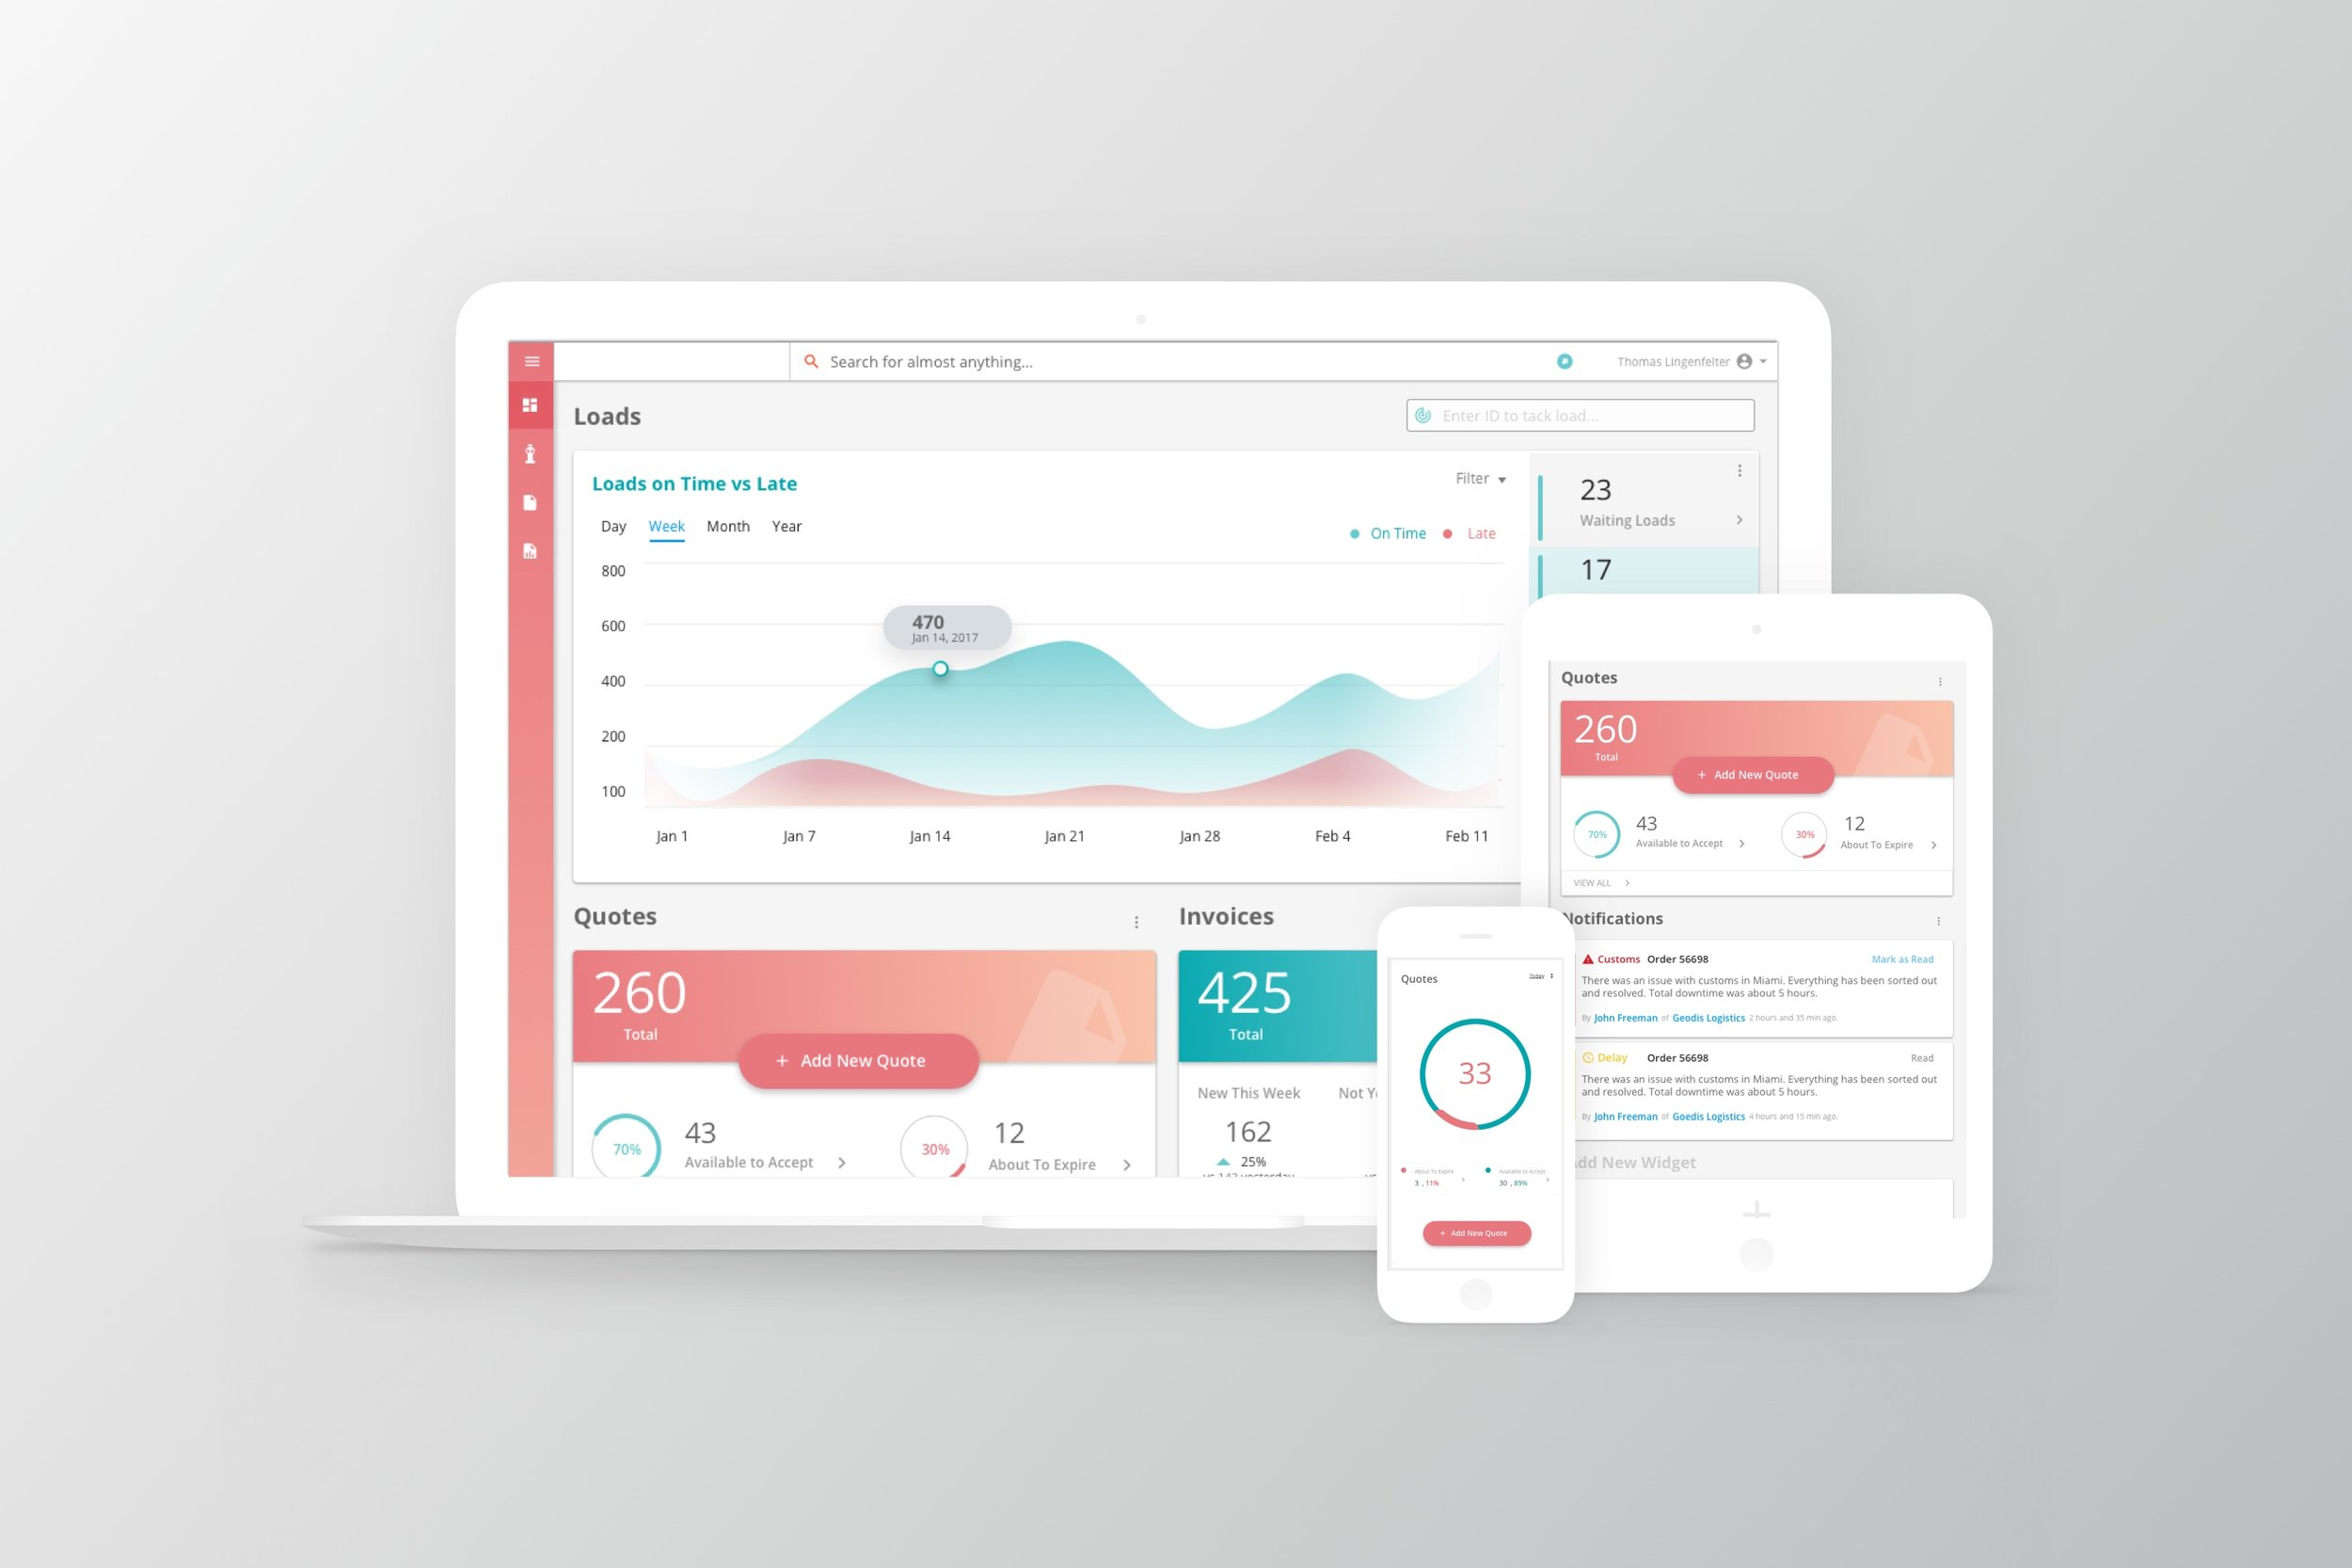 DASHBOARD DESIGN - UX/UI DesignDisciplines Used: User Research,Ideation, Sketching, User Flow, Wireframes, Information Architecture, User Experience, User Centered Design, User Interface, Interaction Design, A/B Testing